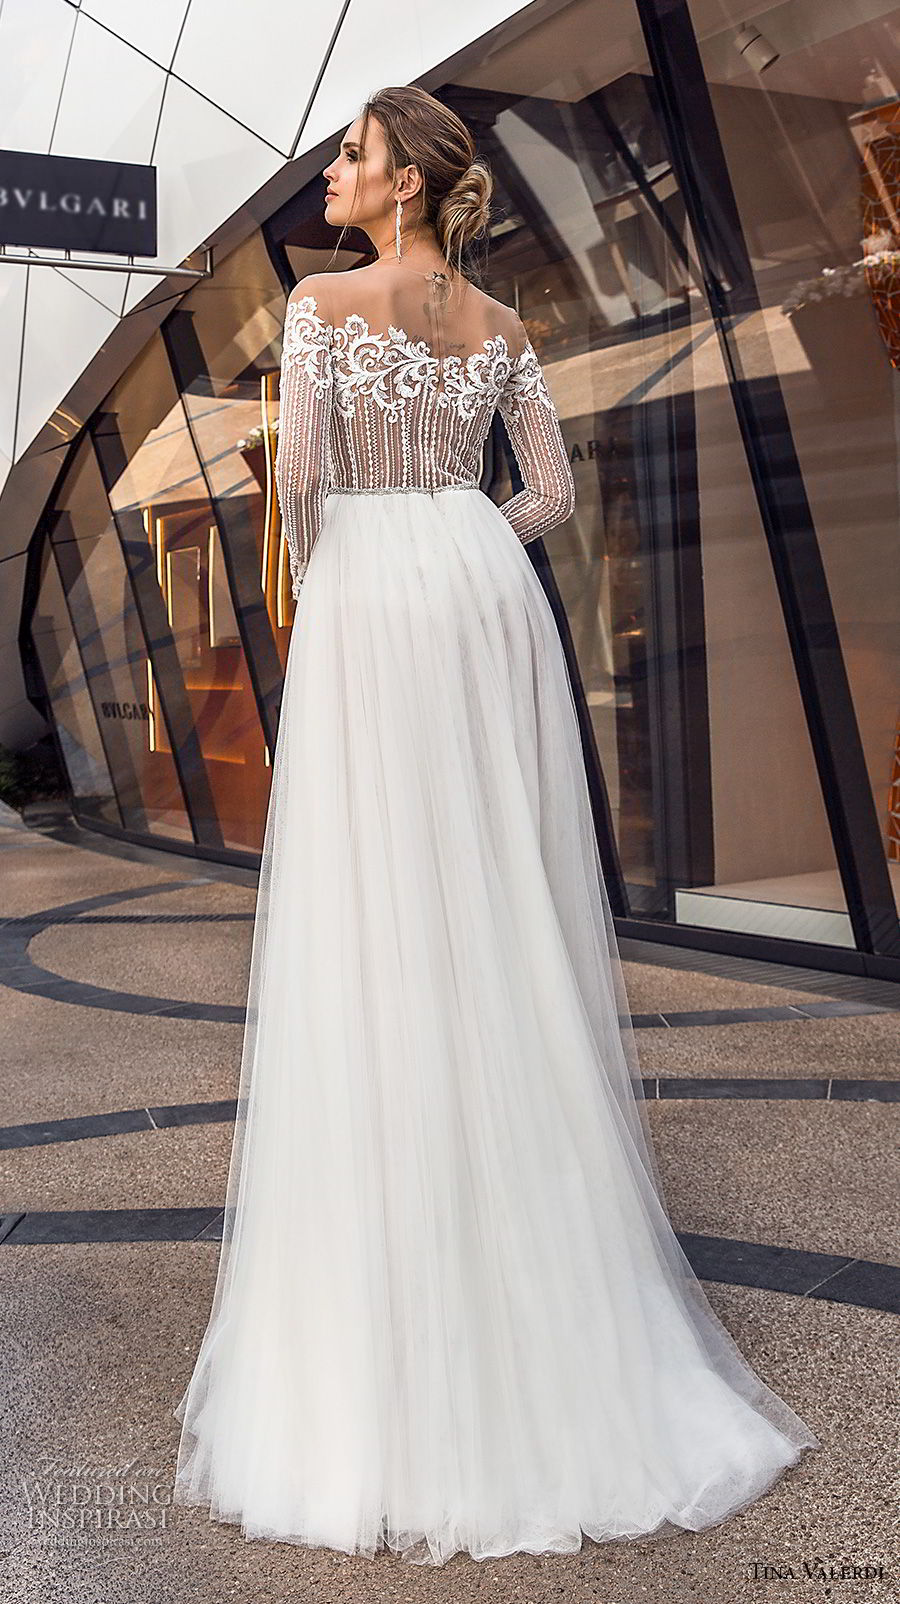 tina valerdi 2019 bridal long sleeves off the shoulder heavily embellished bodice tulle skirt romantic soft a line wedding dress lace back sweep train (13) bv